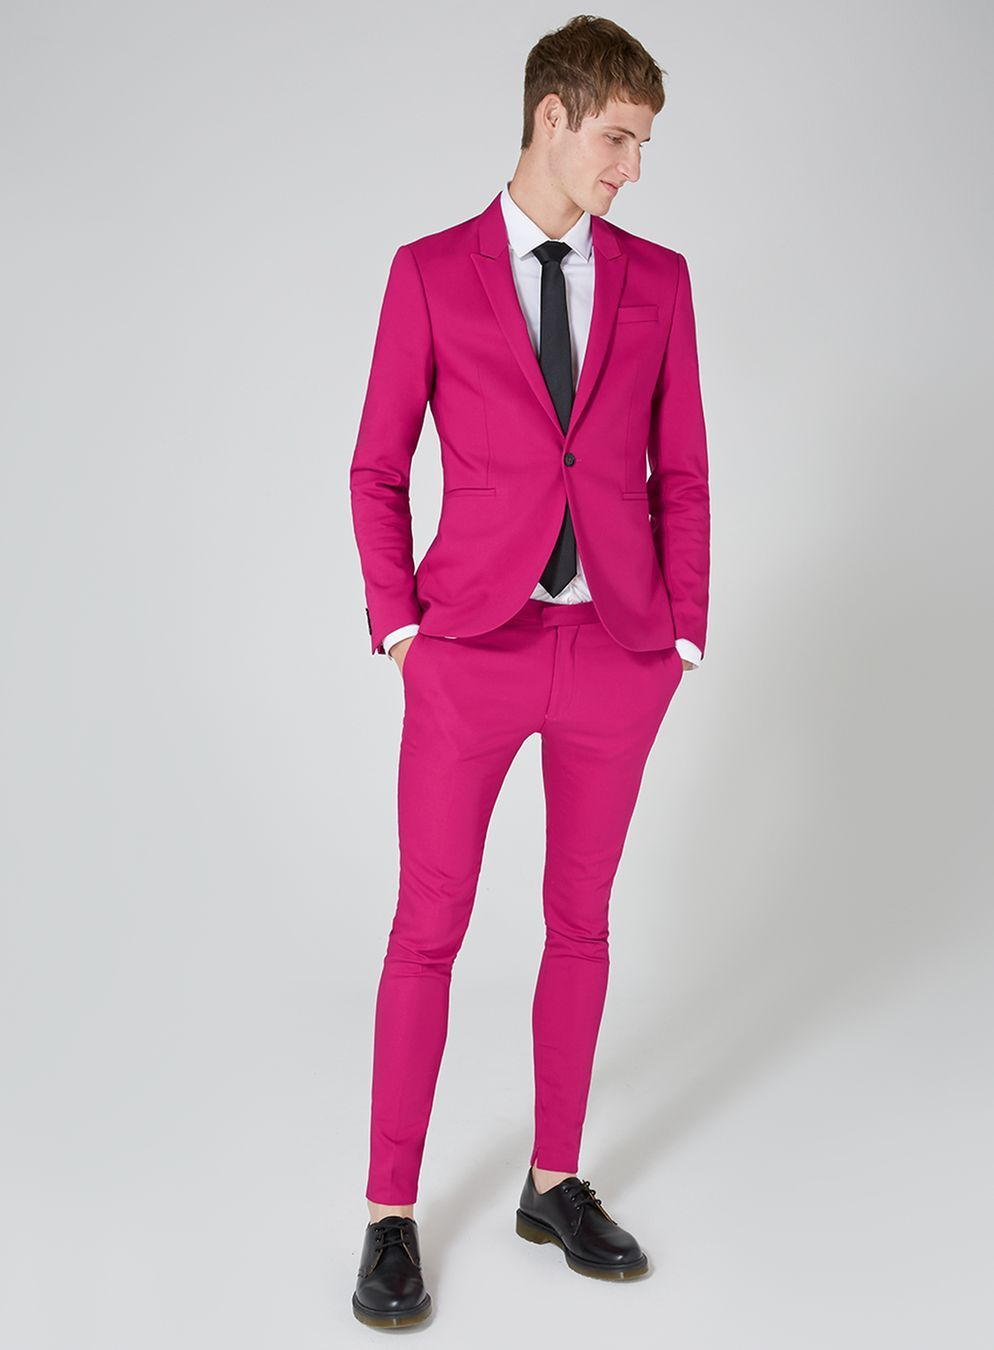 Bright Pink Spray On Suit Jacket | Pinterest | Suit jackets and ...